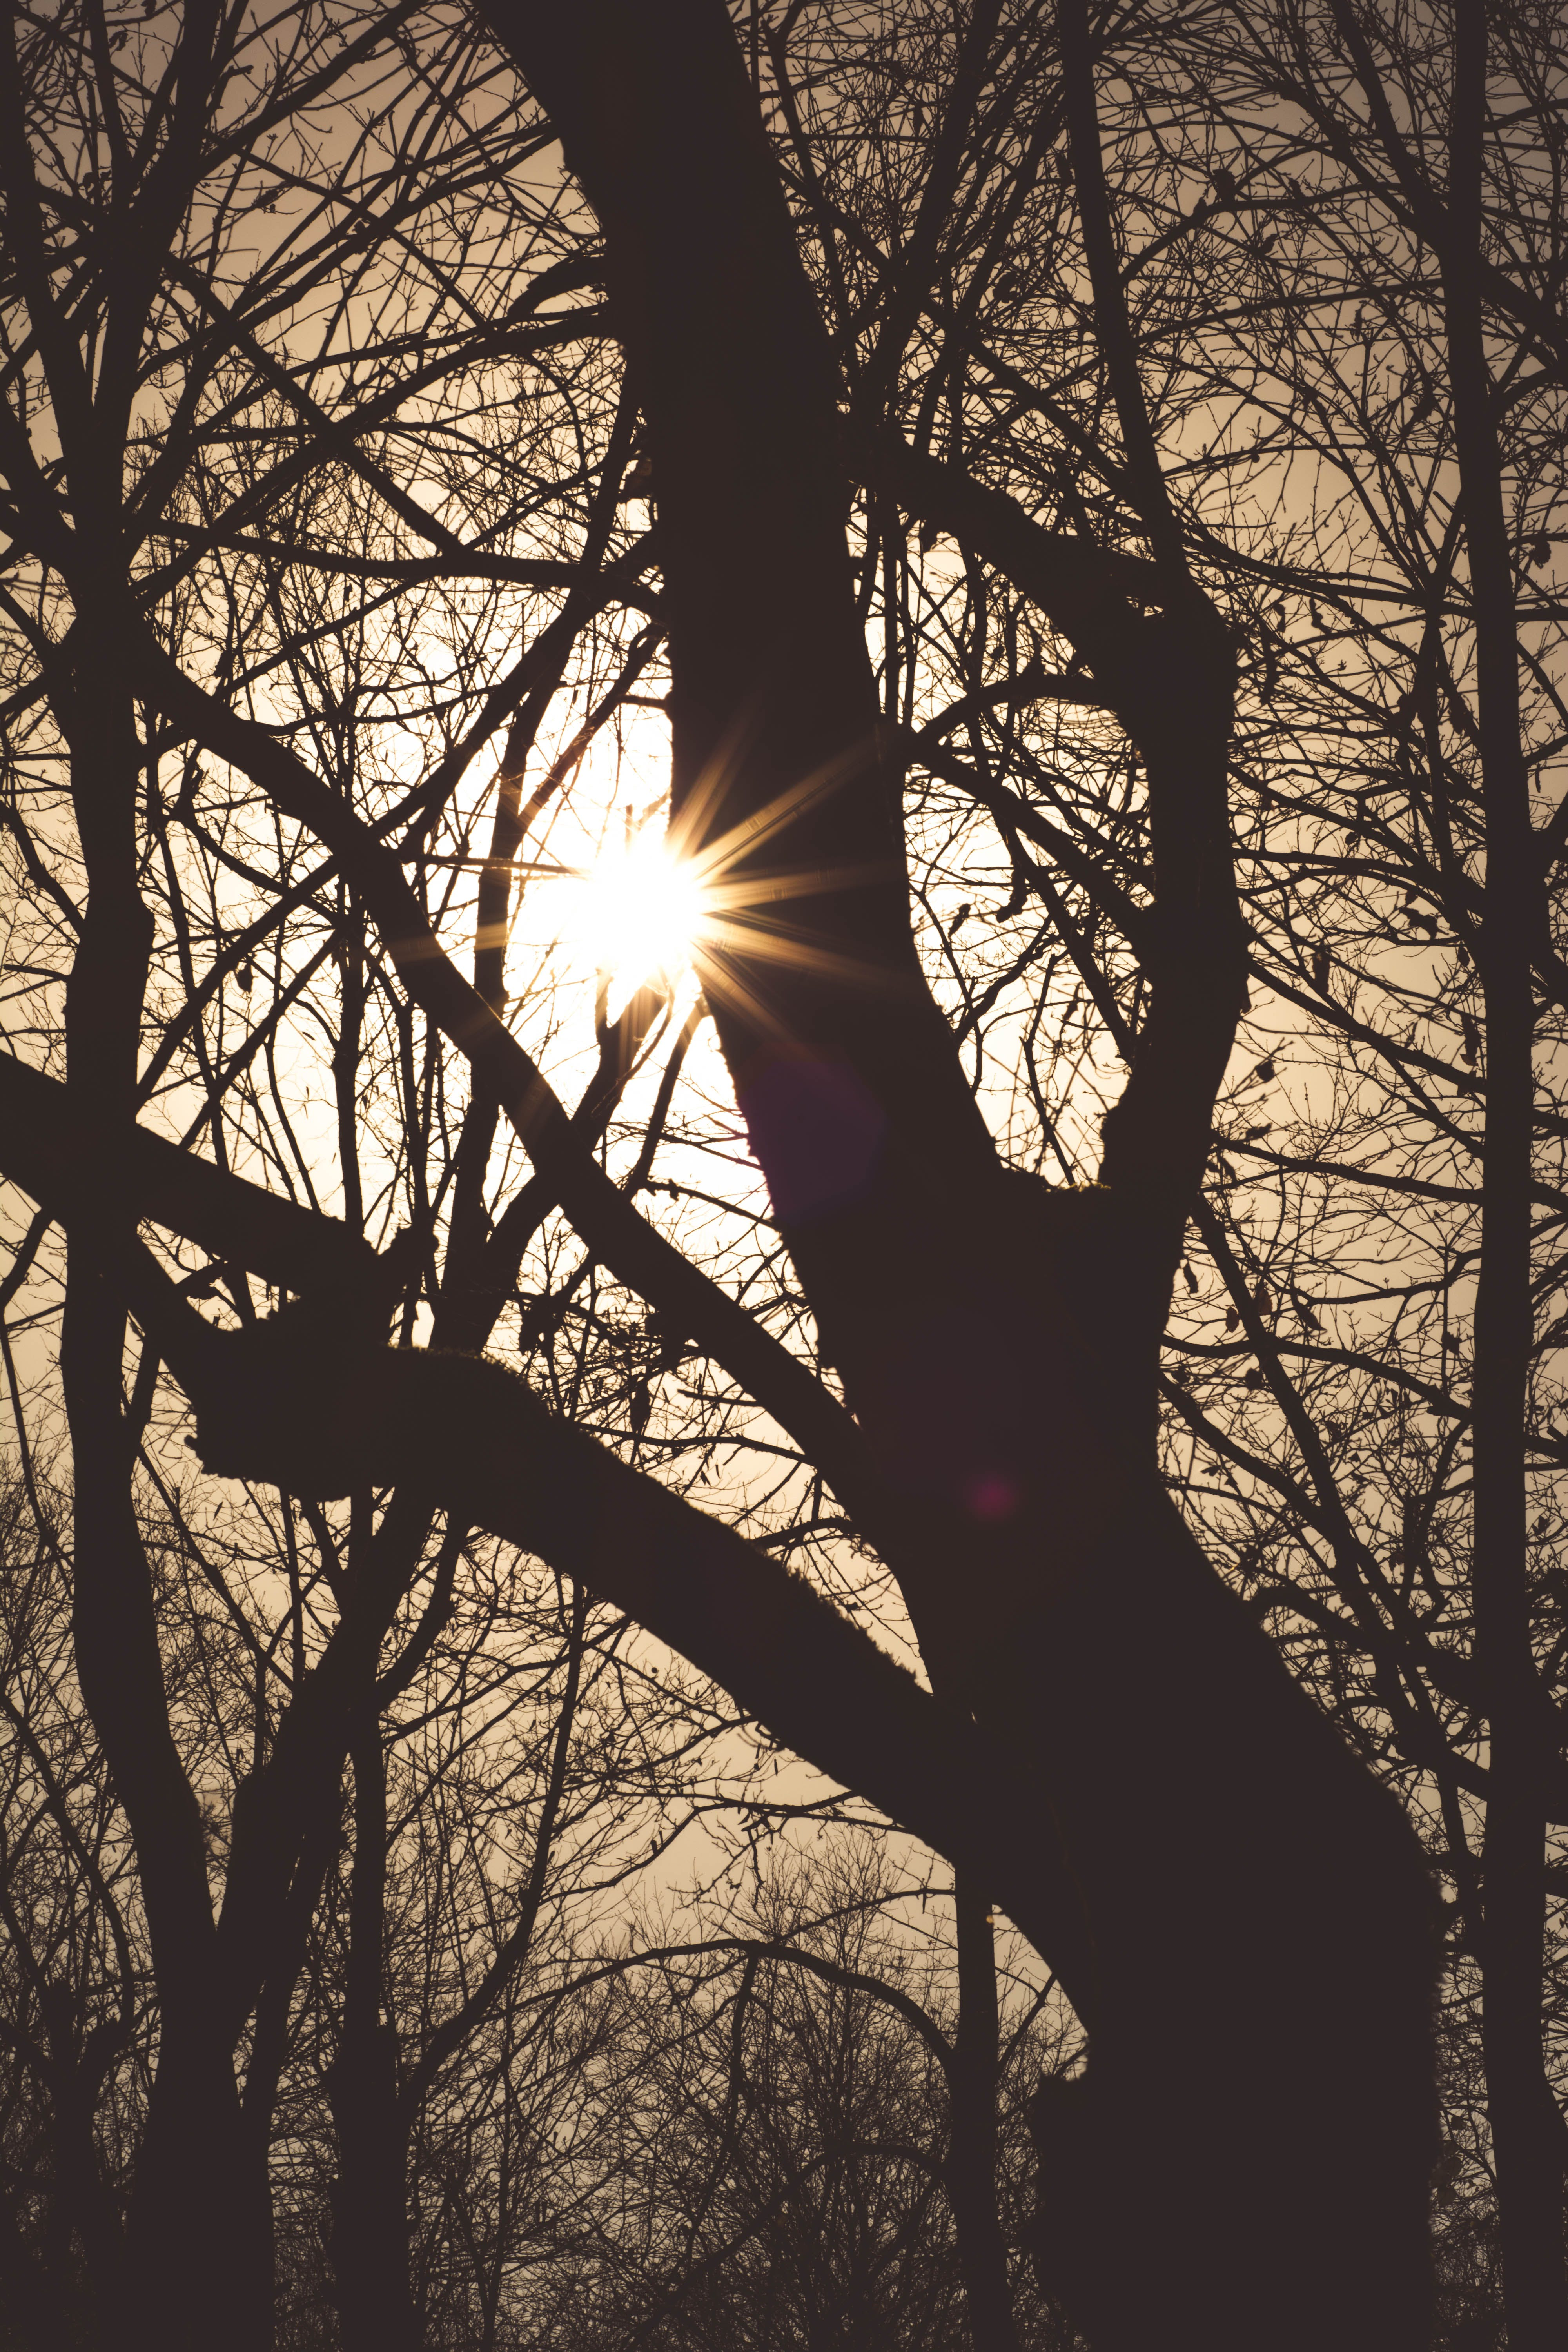 Free stock photo of nature, outdoor, sun, tree